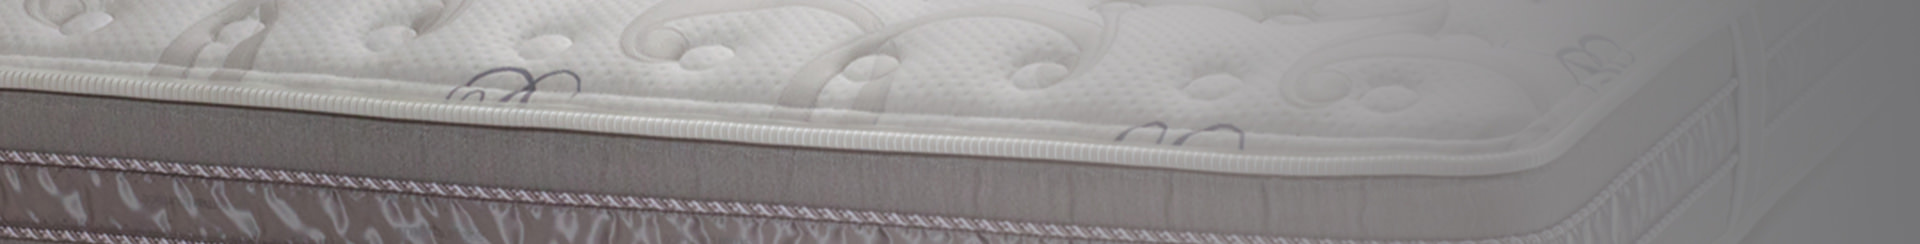 innerspring mattress - Innerspring Mattress